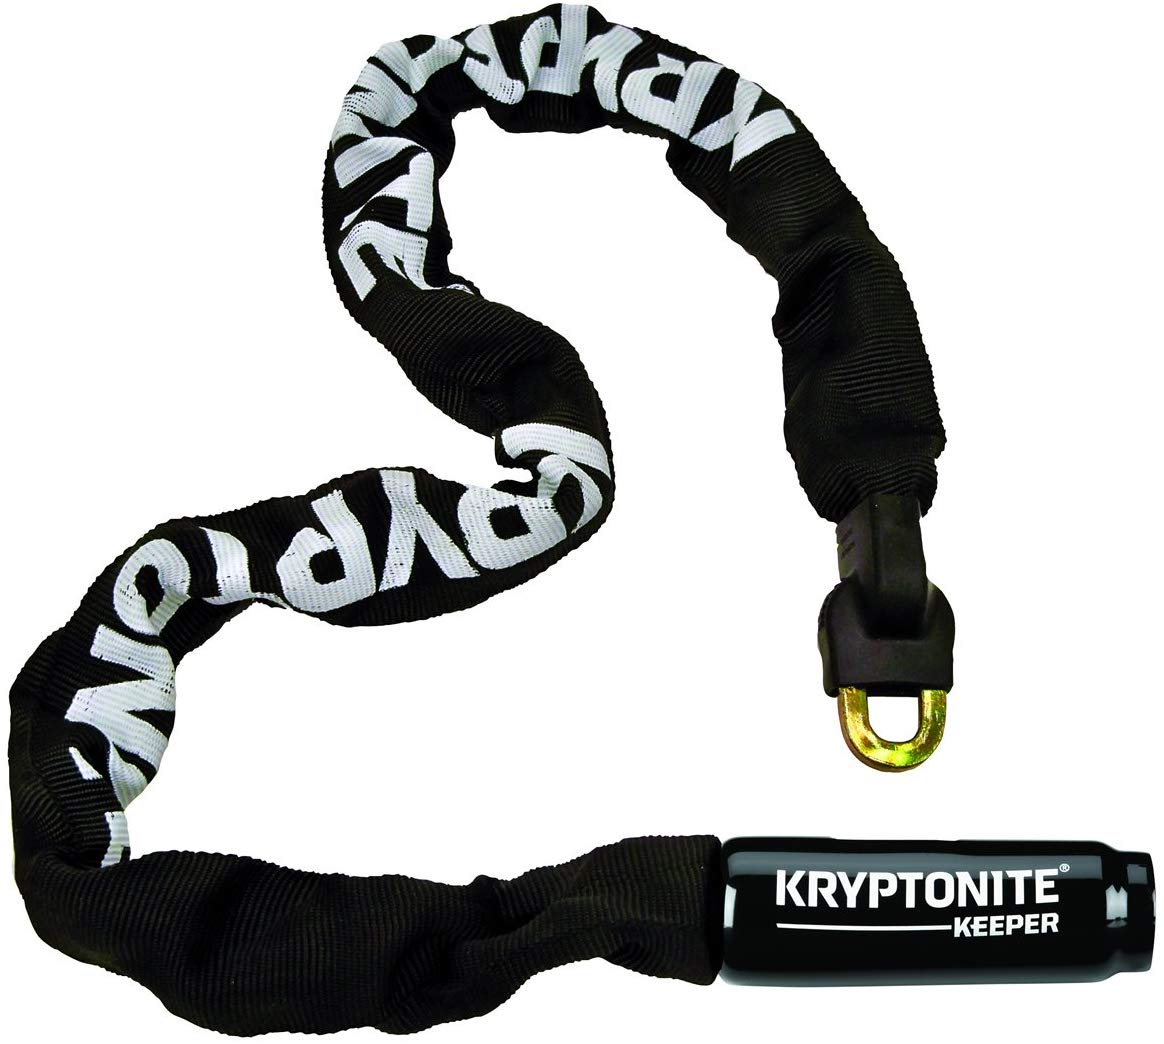 Kryptonite Keeper 785 Integrated Bicycle Lock